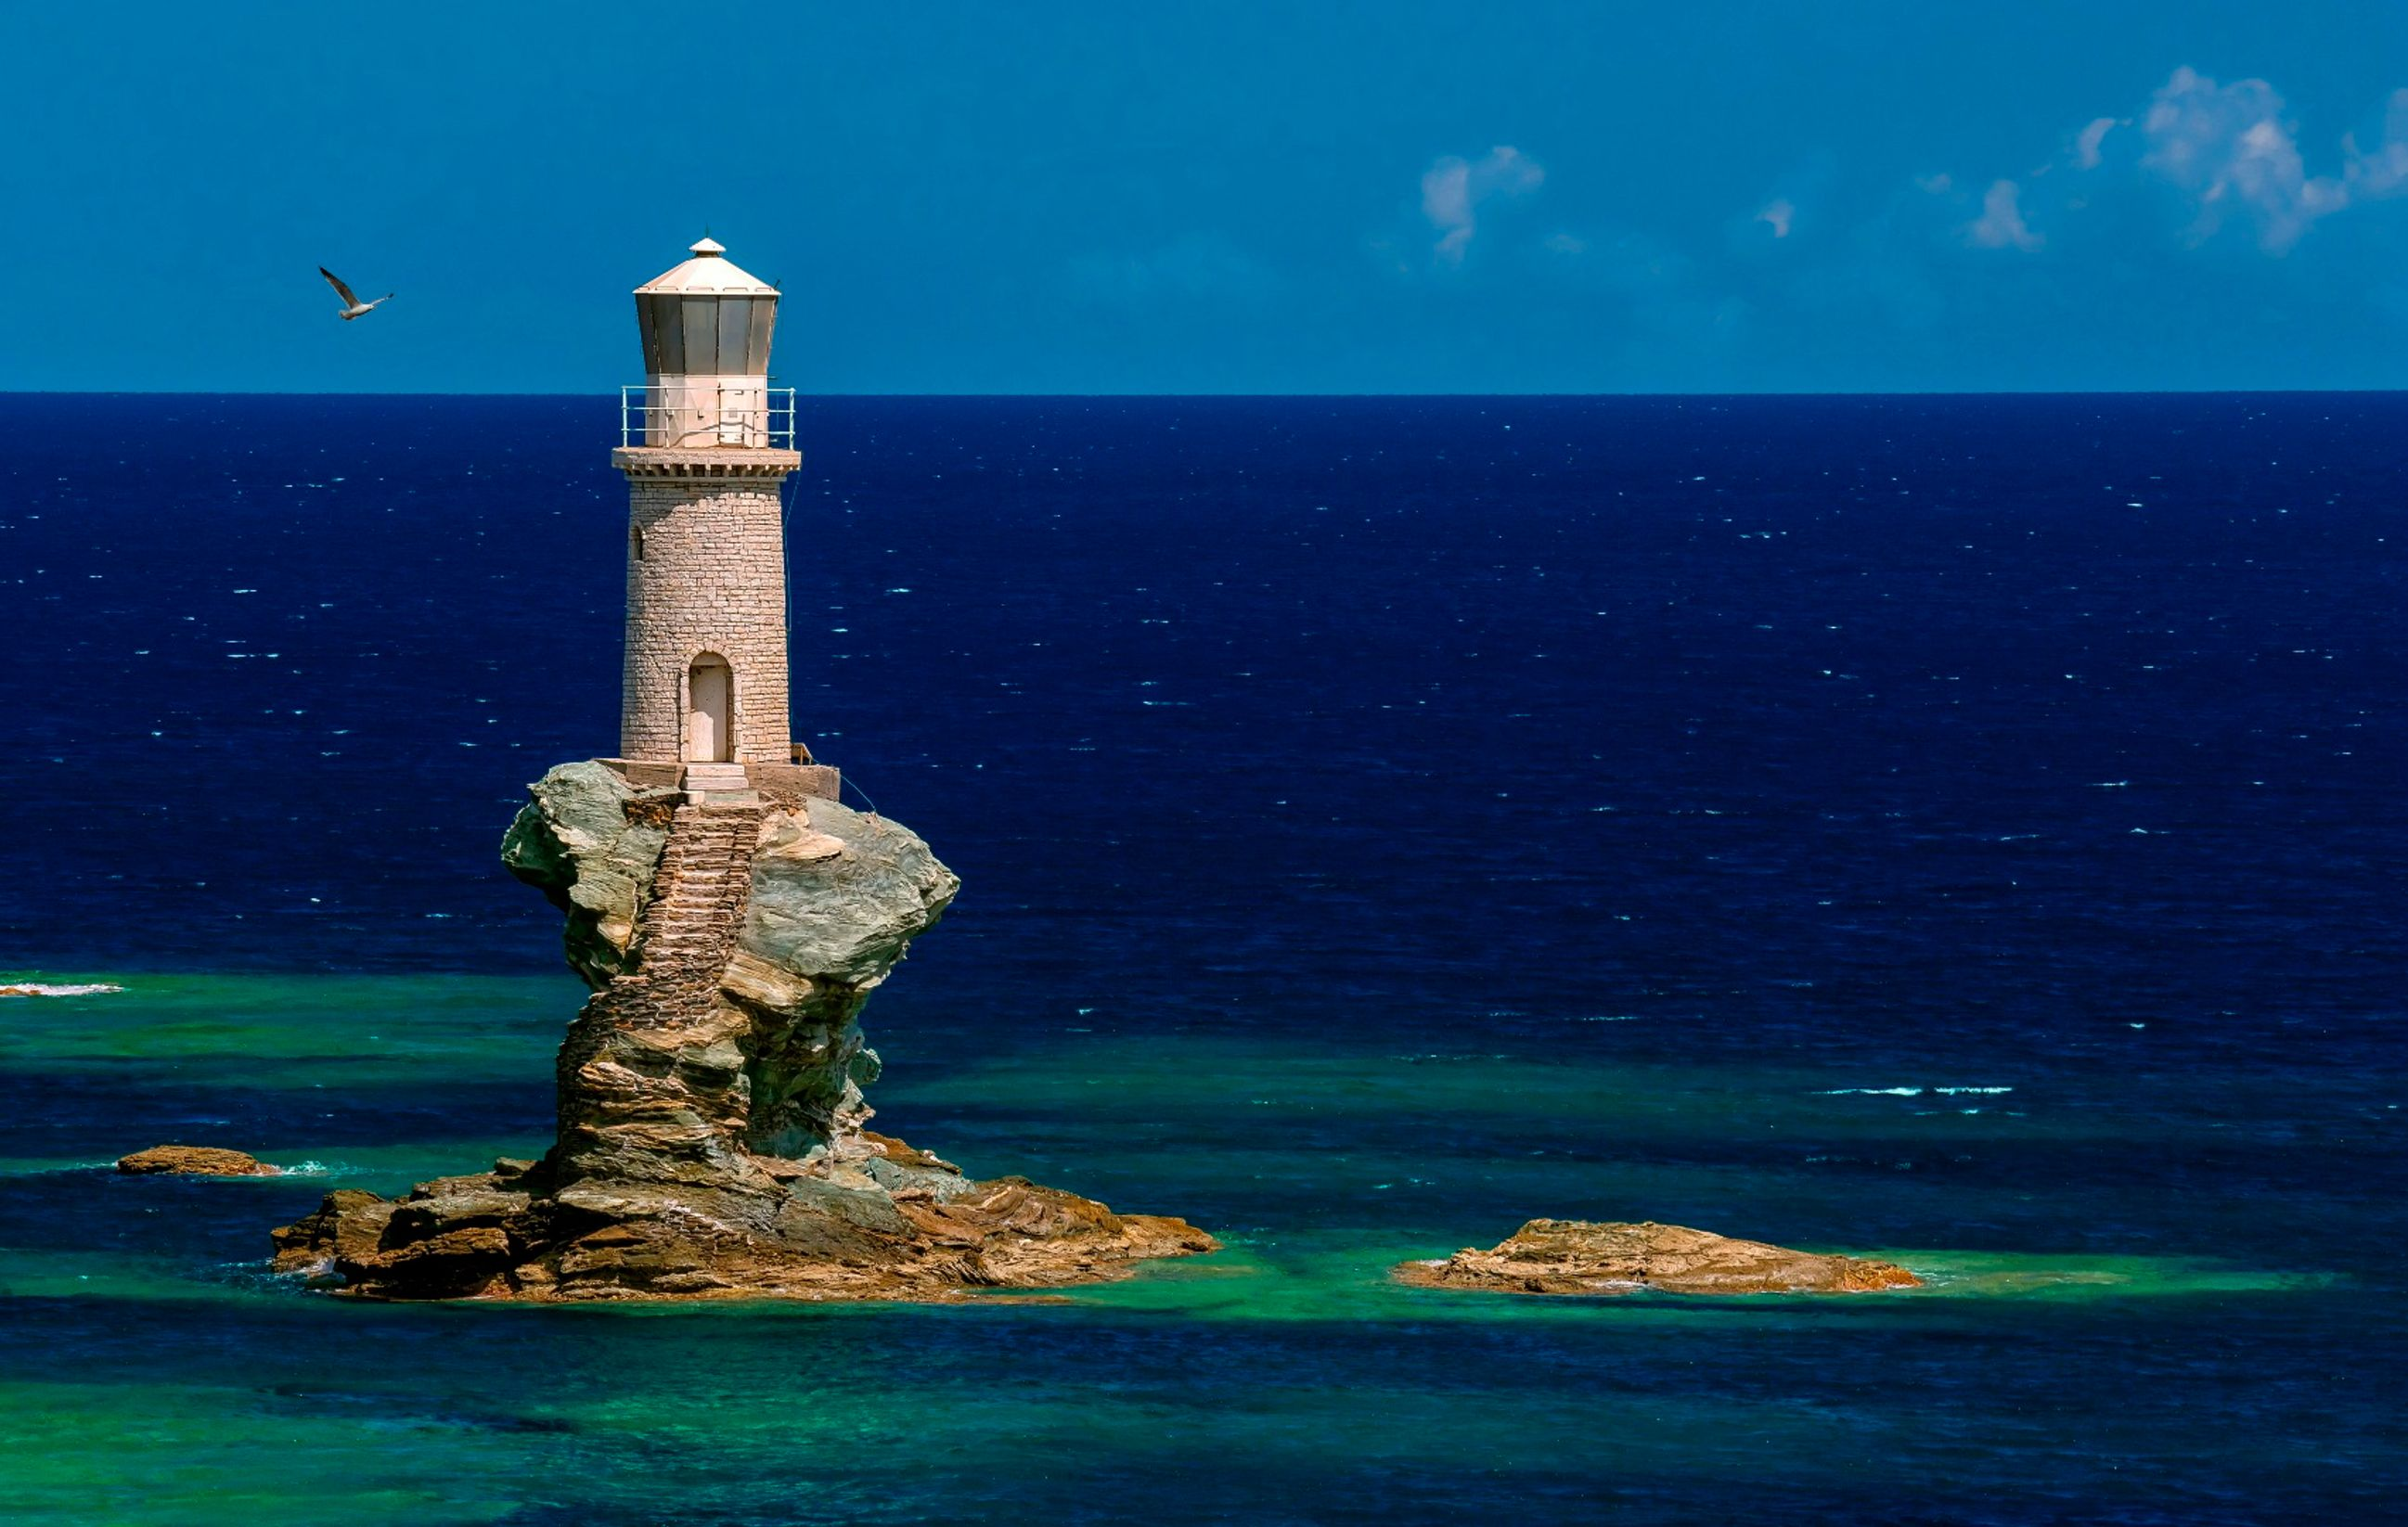 Faro Tourlitis - beautiful lighthouse perched on curved rock platform in Andros, Greece